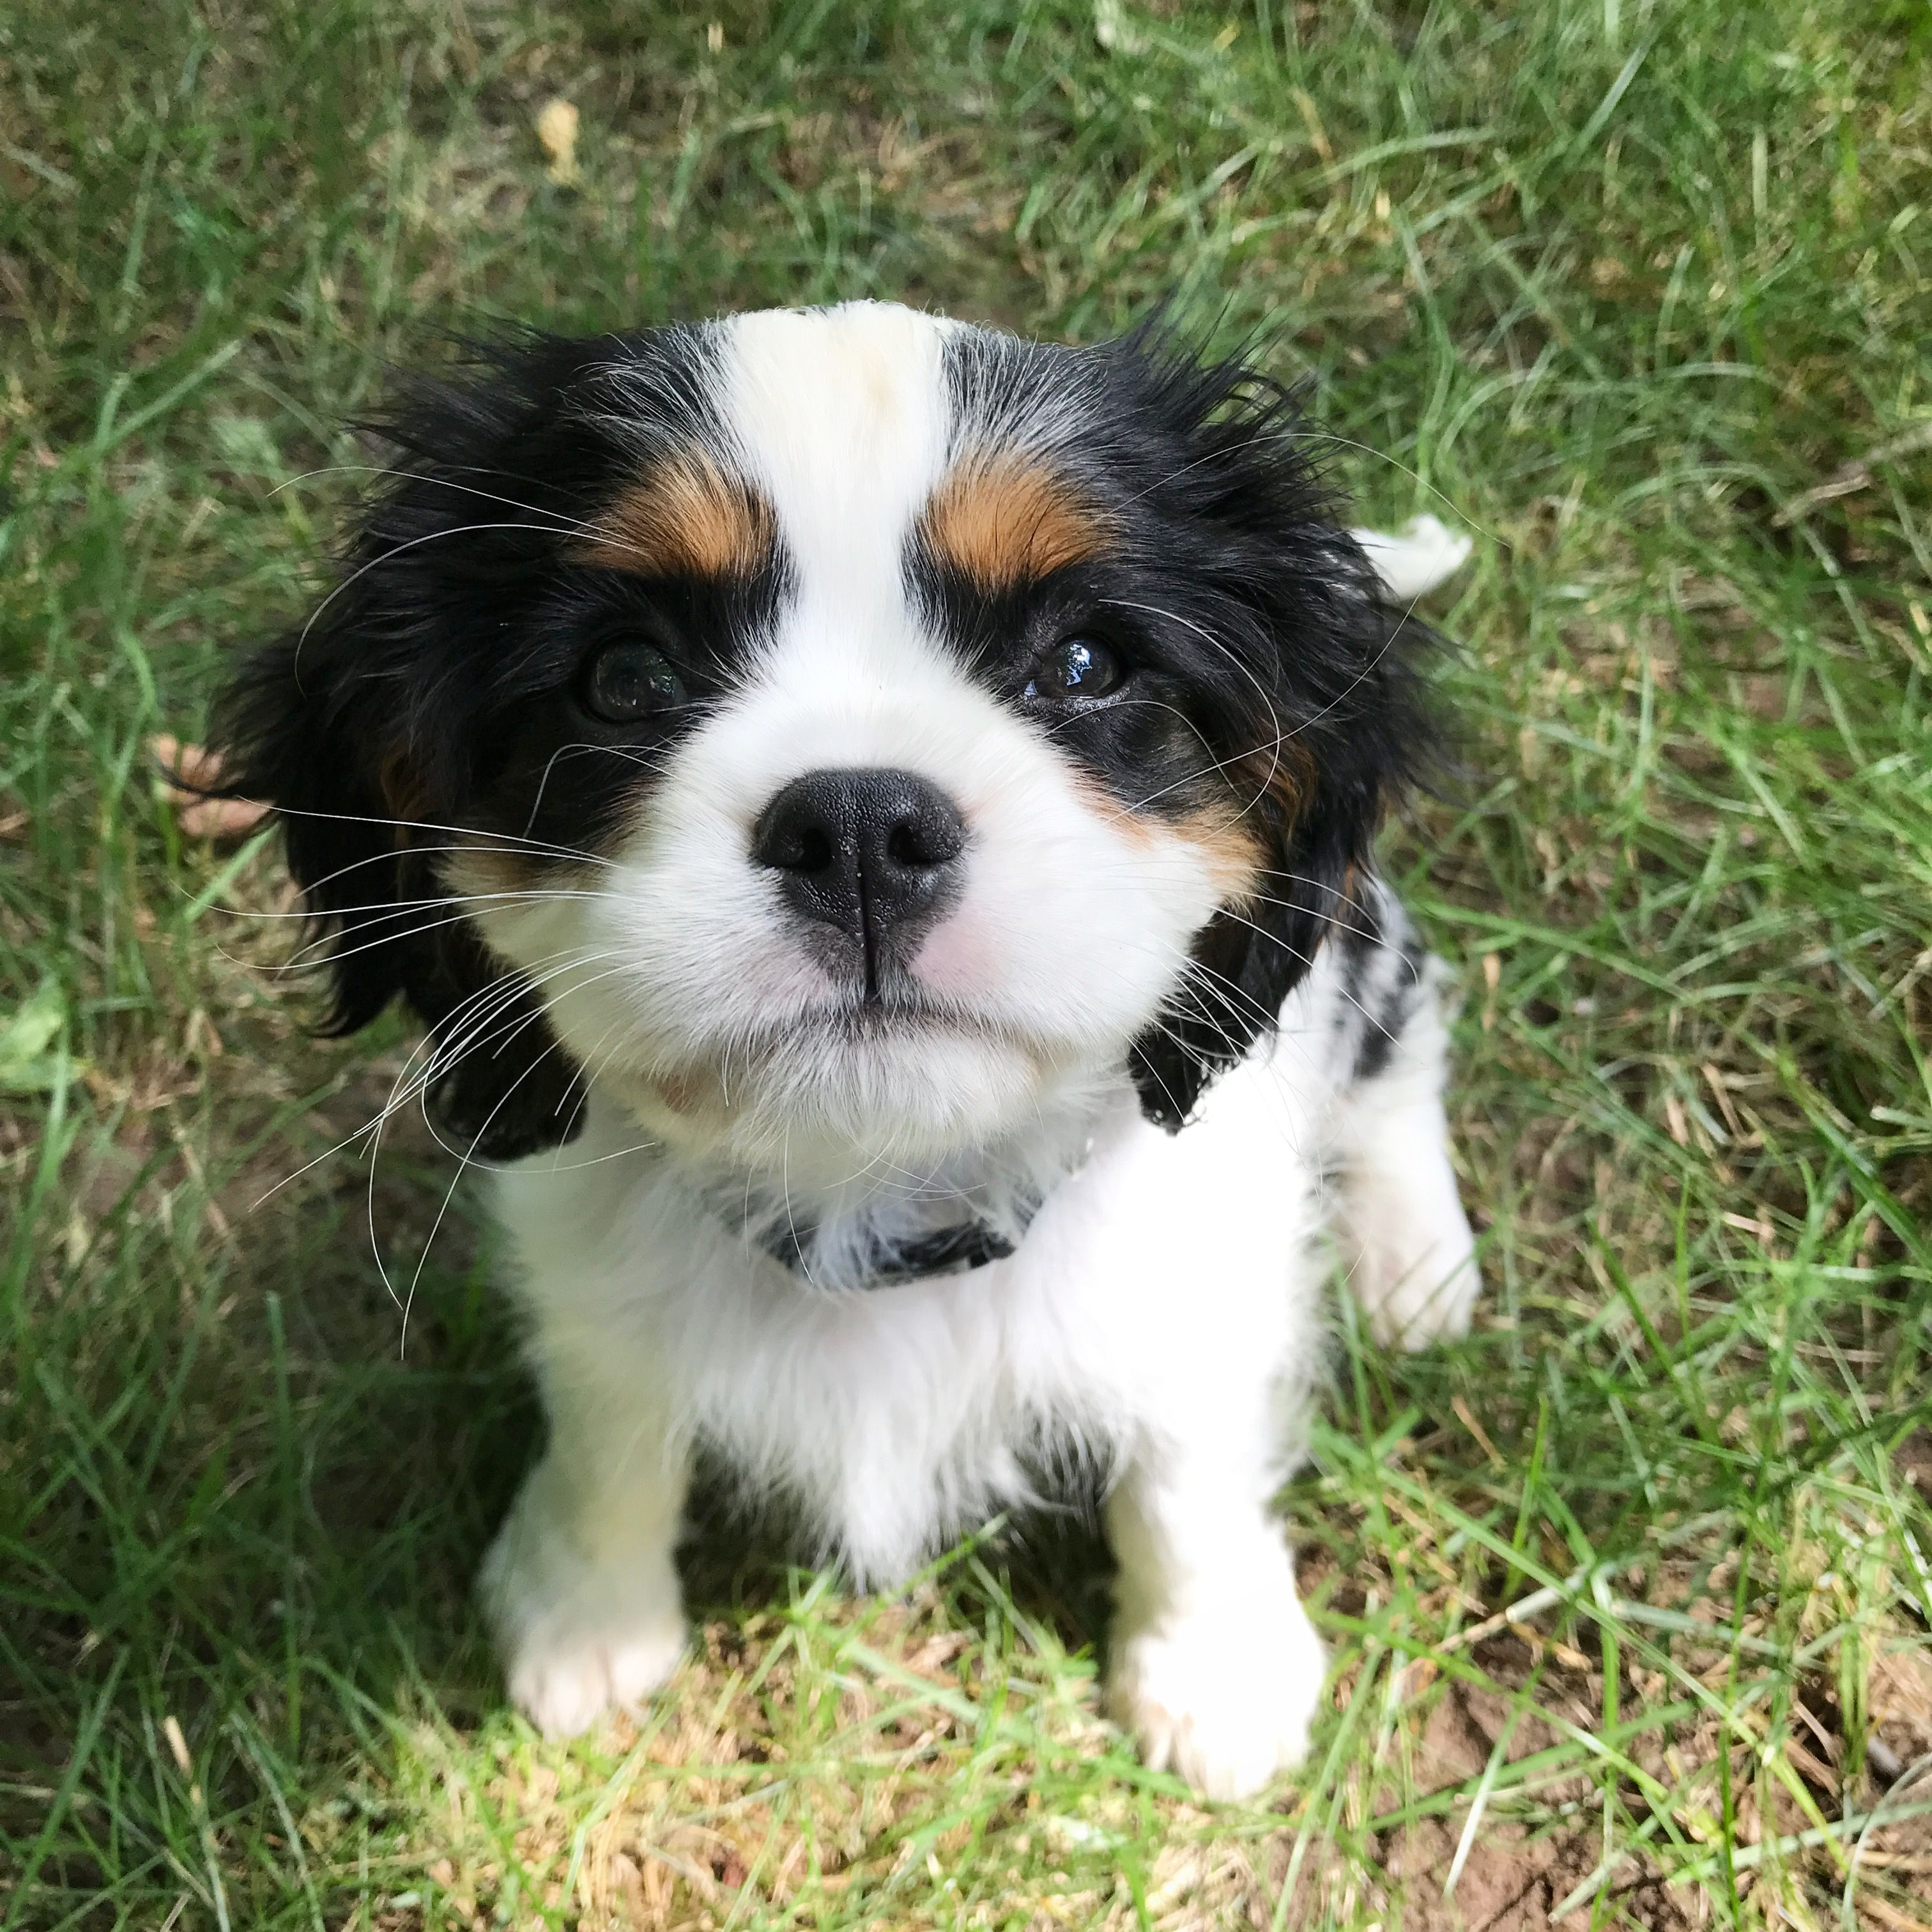 Cavalier King Charles Spaniel Graceful And Affectionate Cavalier Puppy King Charles Cavalier Spaniel Puppy Cavalier King Charles Spaniel